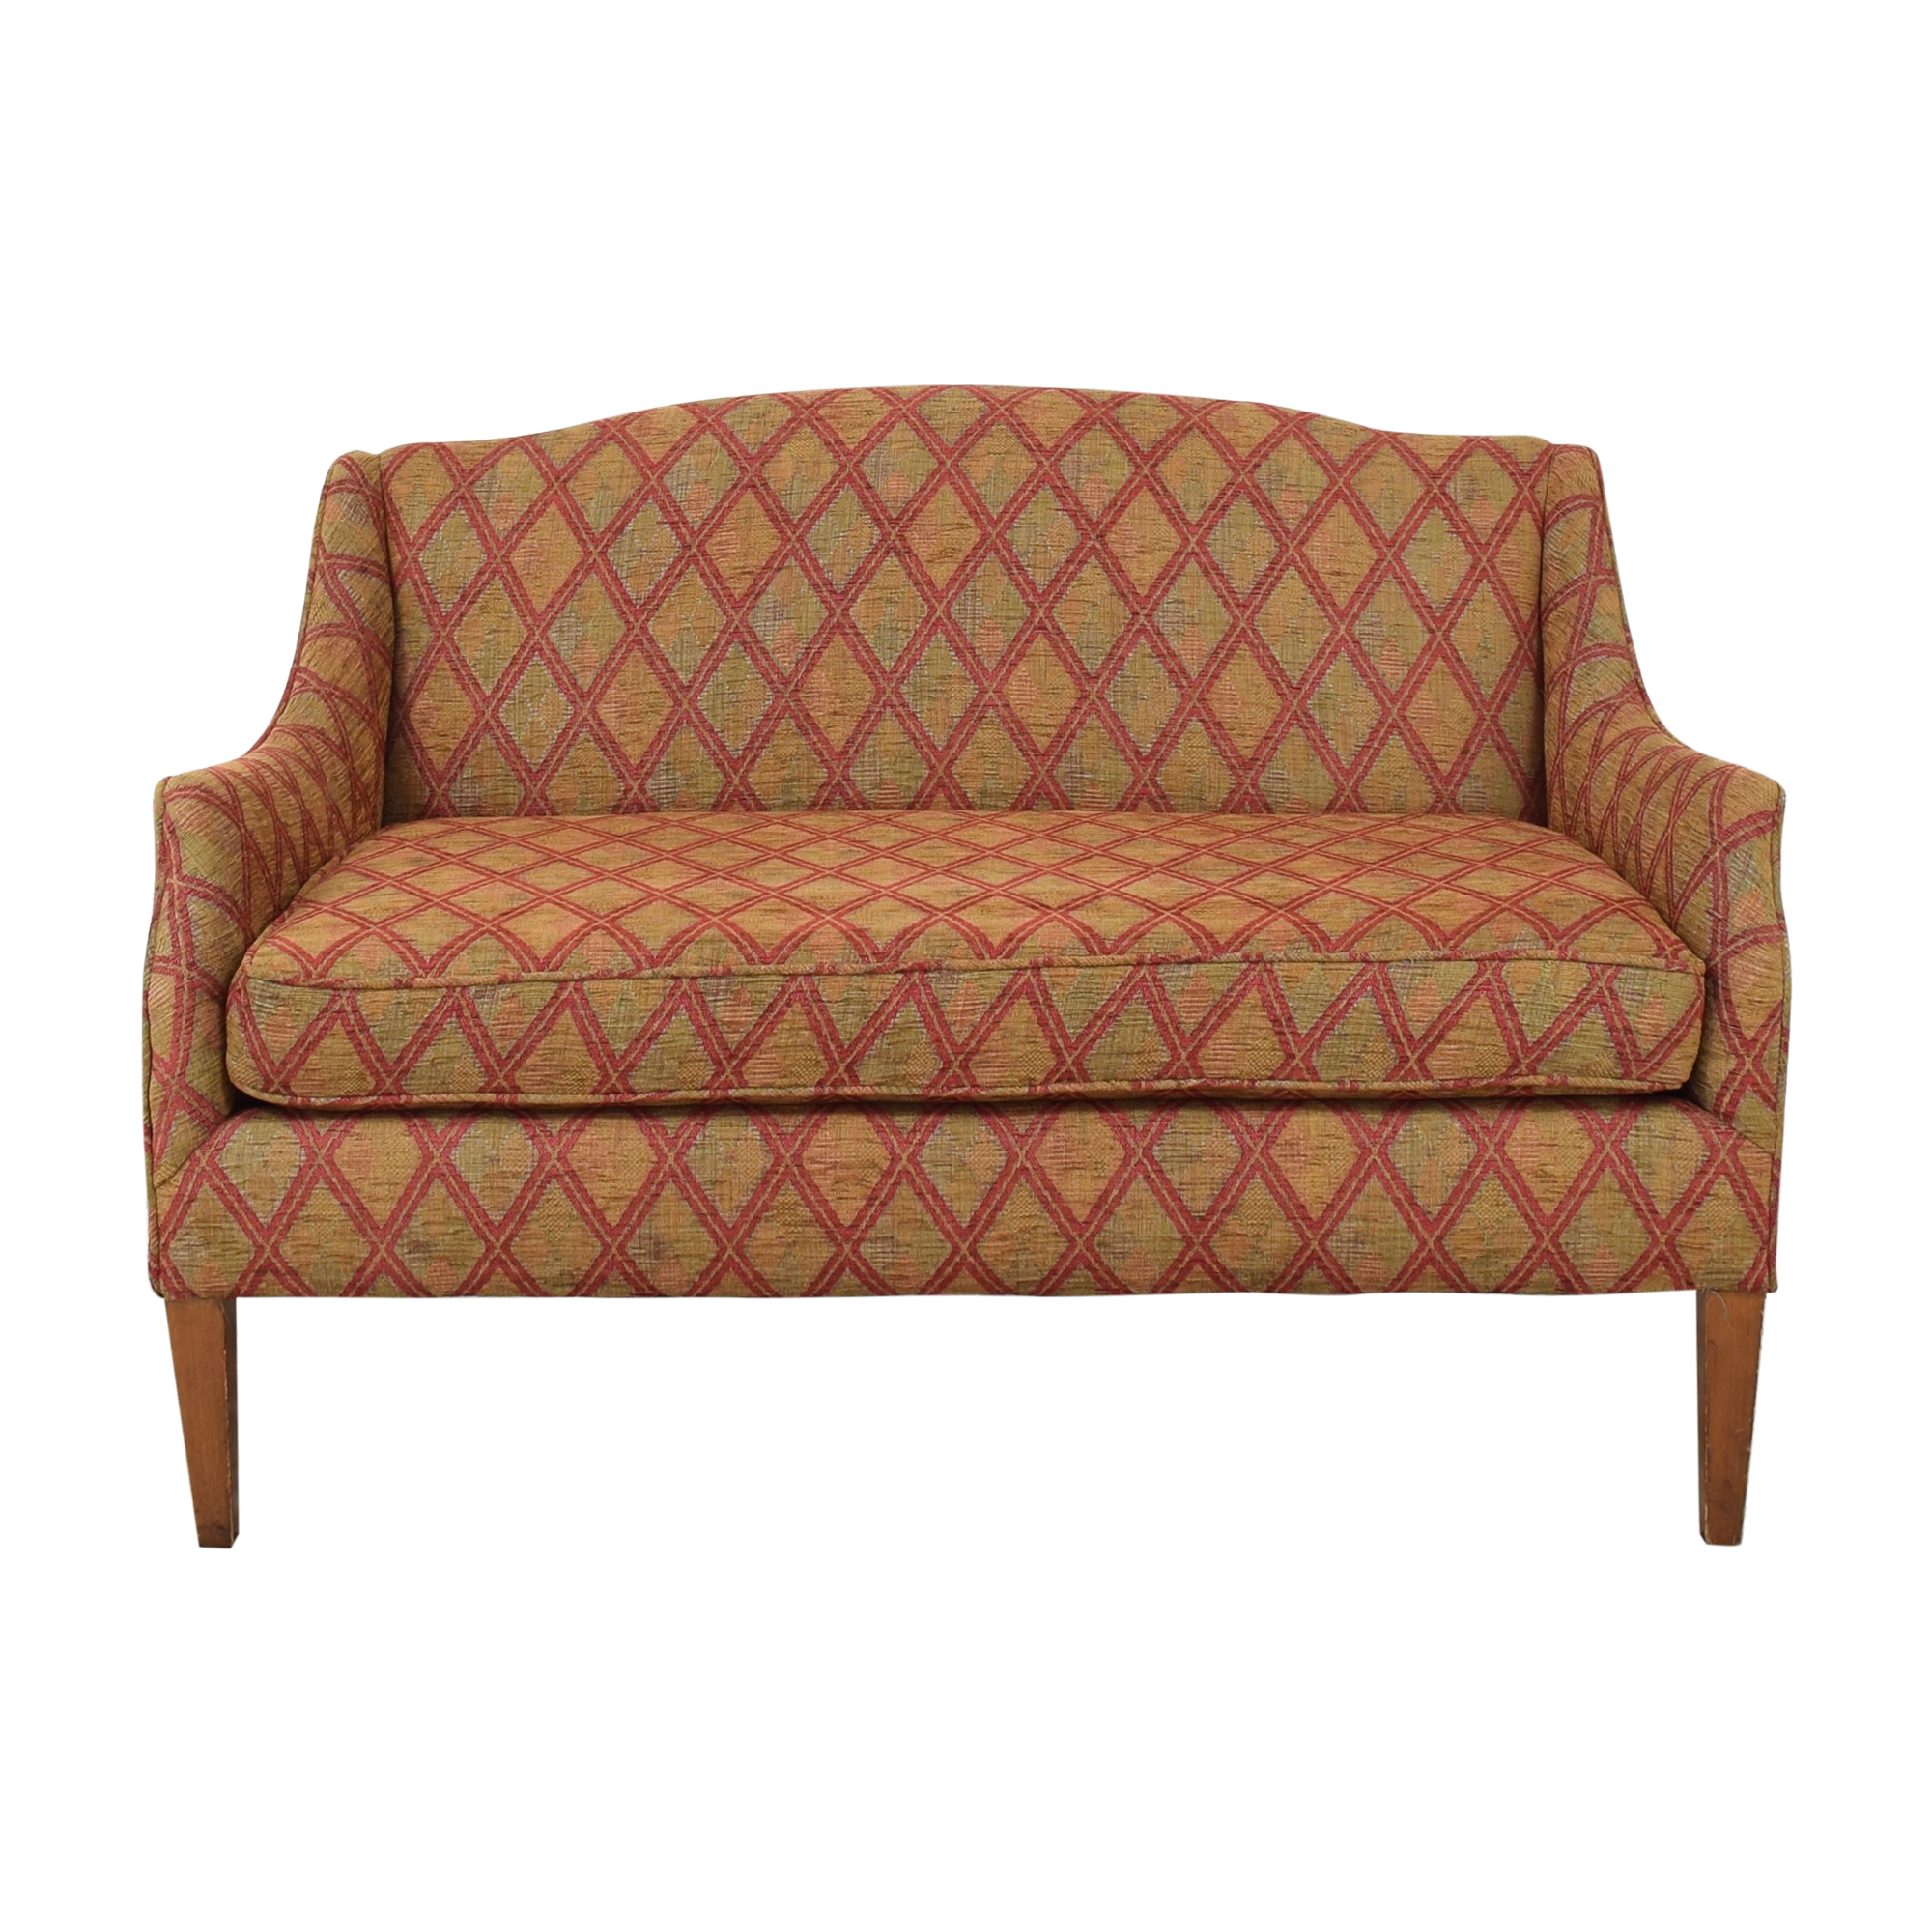 Slope Arm Loveseat coupon